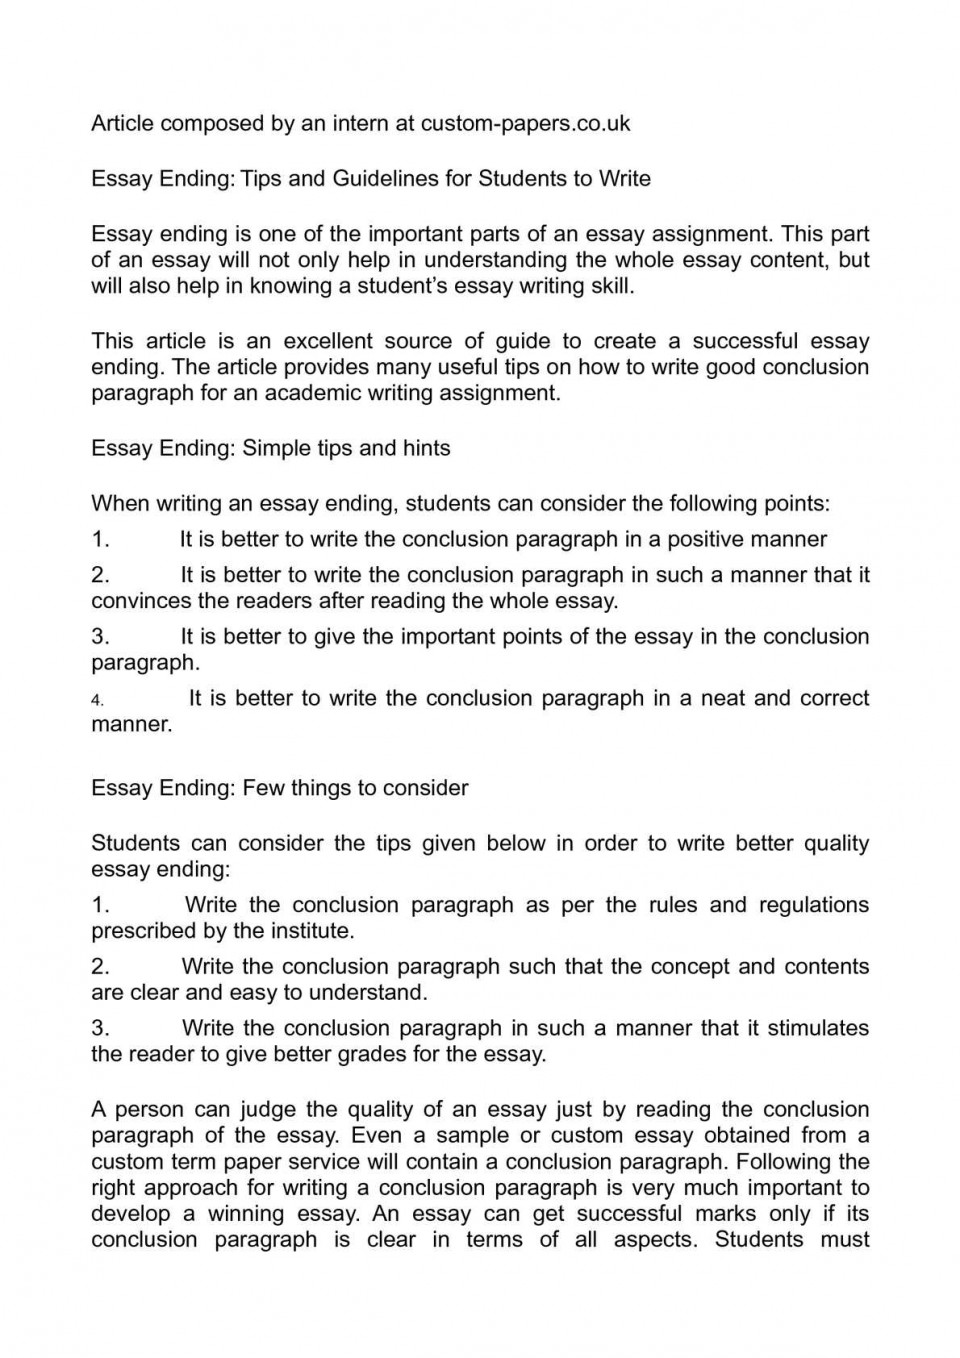 001 Parts Of An Essay Ending Tips And Guidelines For Students To Write Writing Persuasi Pdf Three Persuasive Stupendous Quizlet A Ppt The Introduction Academic 960